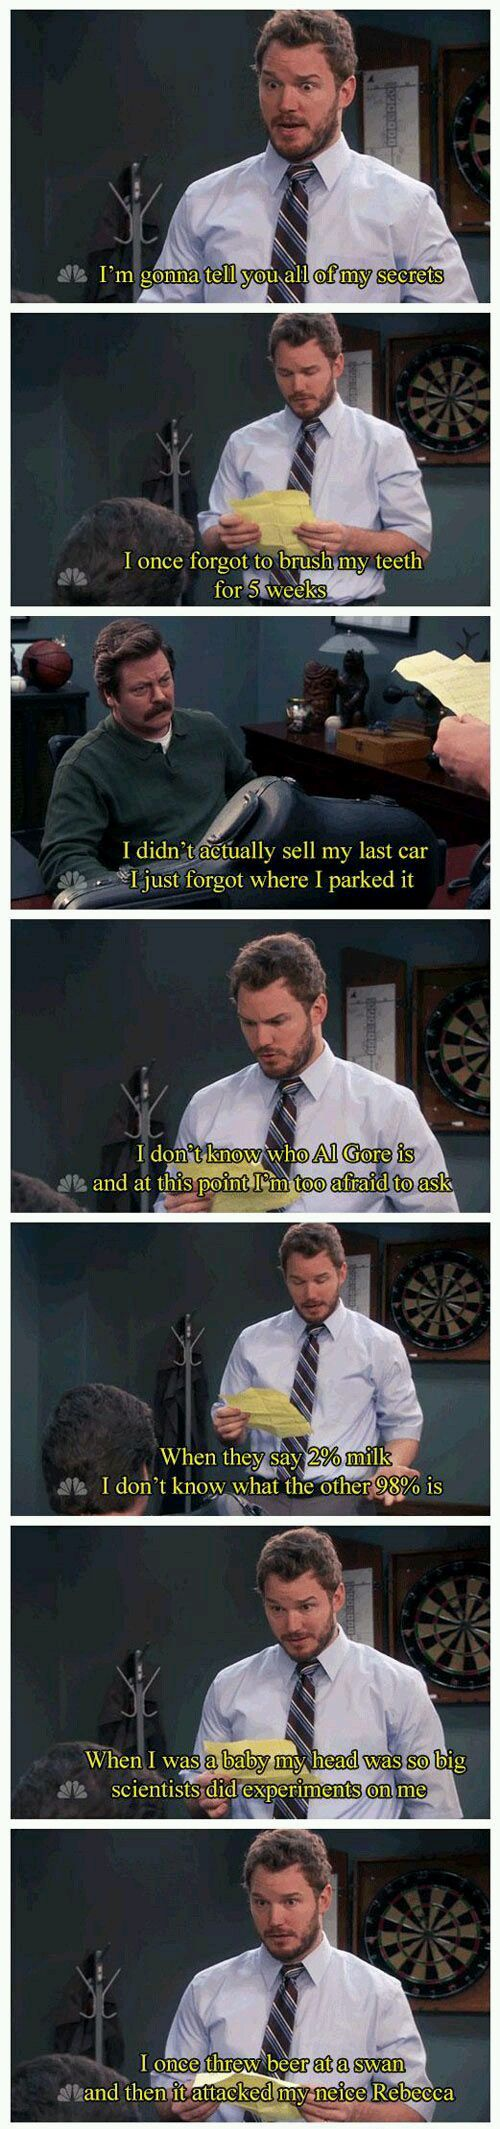 Chris Pratt's secrets (Parks & Rec)